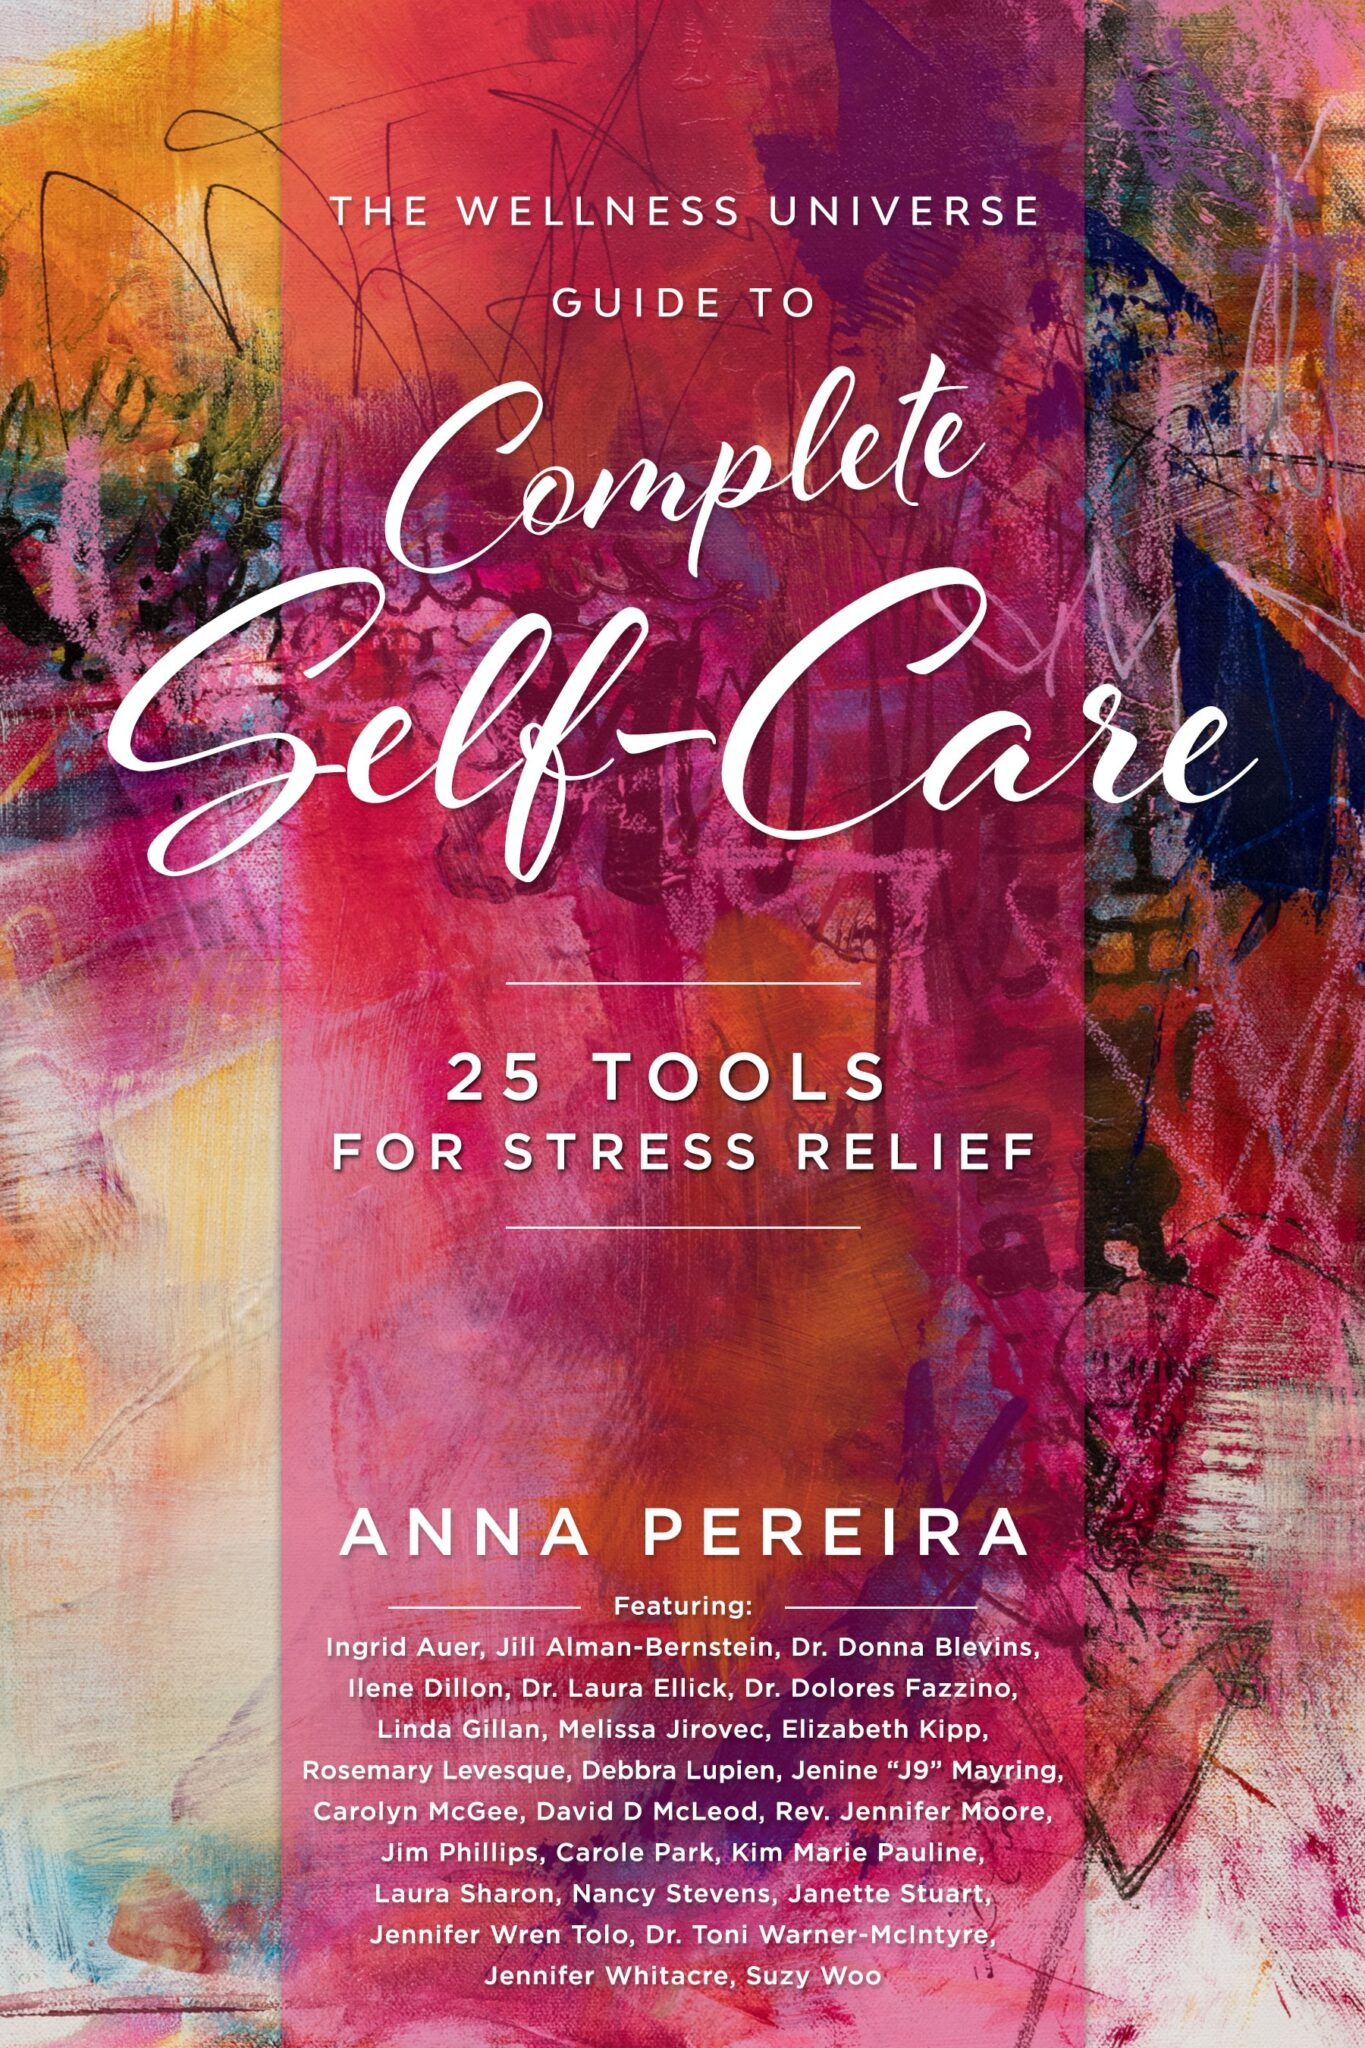 The Wellness Universe Guide to Complete Self-Care, 25 Tools for Stress Relief